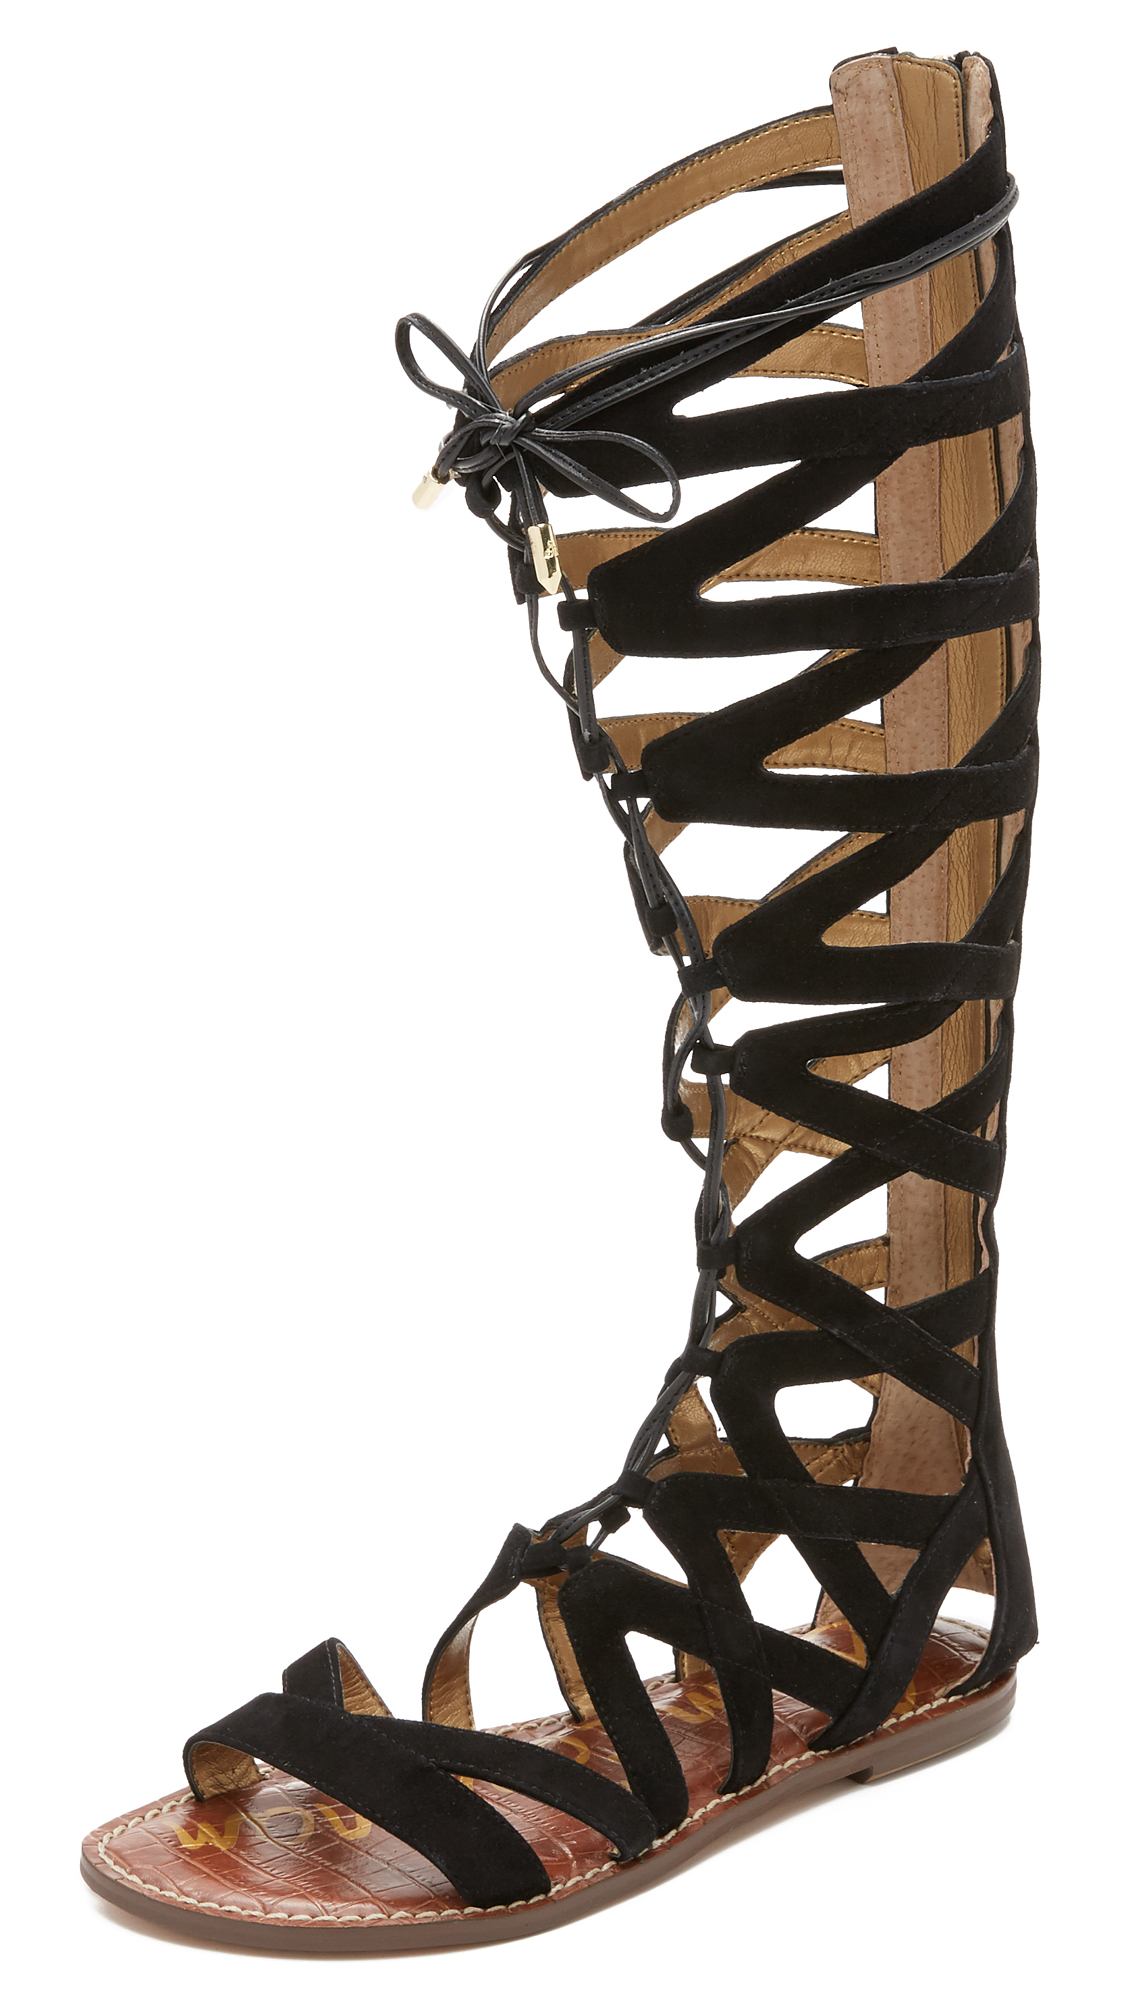 64f02946f35d Lyst - Sam Edelman Gena Tall Gladiator Sandals in Black